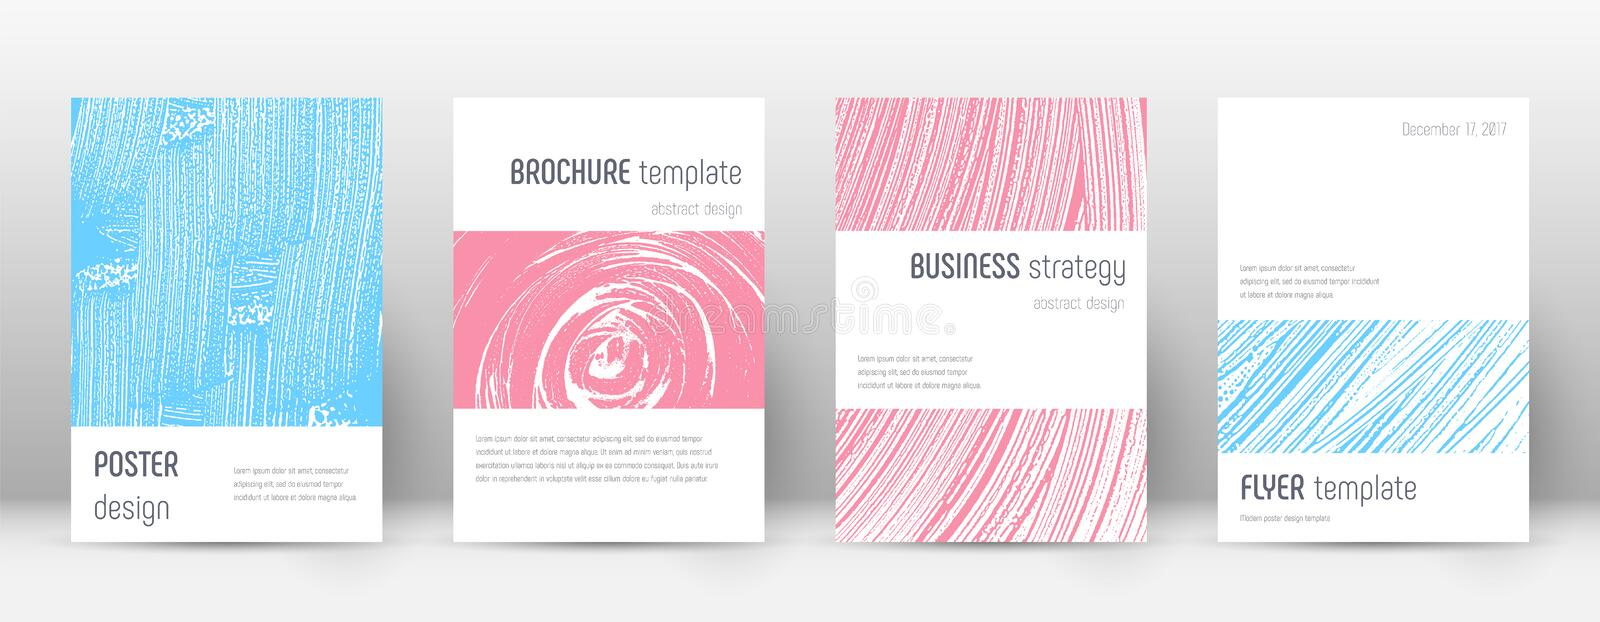 Cover page design template. Minimalistic brochure. Layout. Classy trendy abstract cover page. Pink and blue grunge texture background. Cute poster royalty free illustration